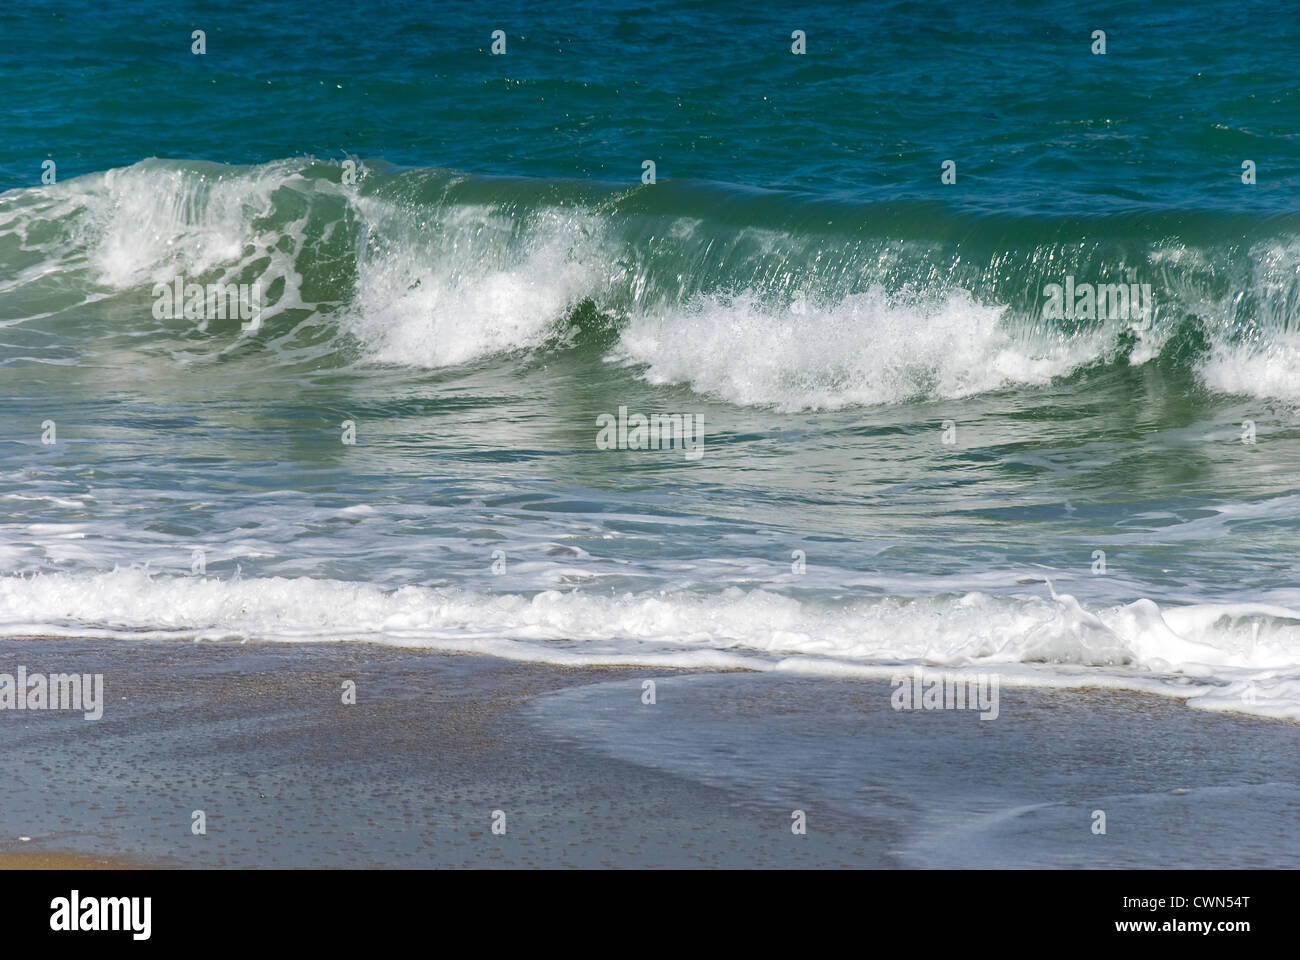 A wave is rolling onto a beach on Pelion peninsula (Thessaly, Greece) - Stock Image